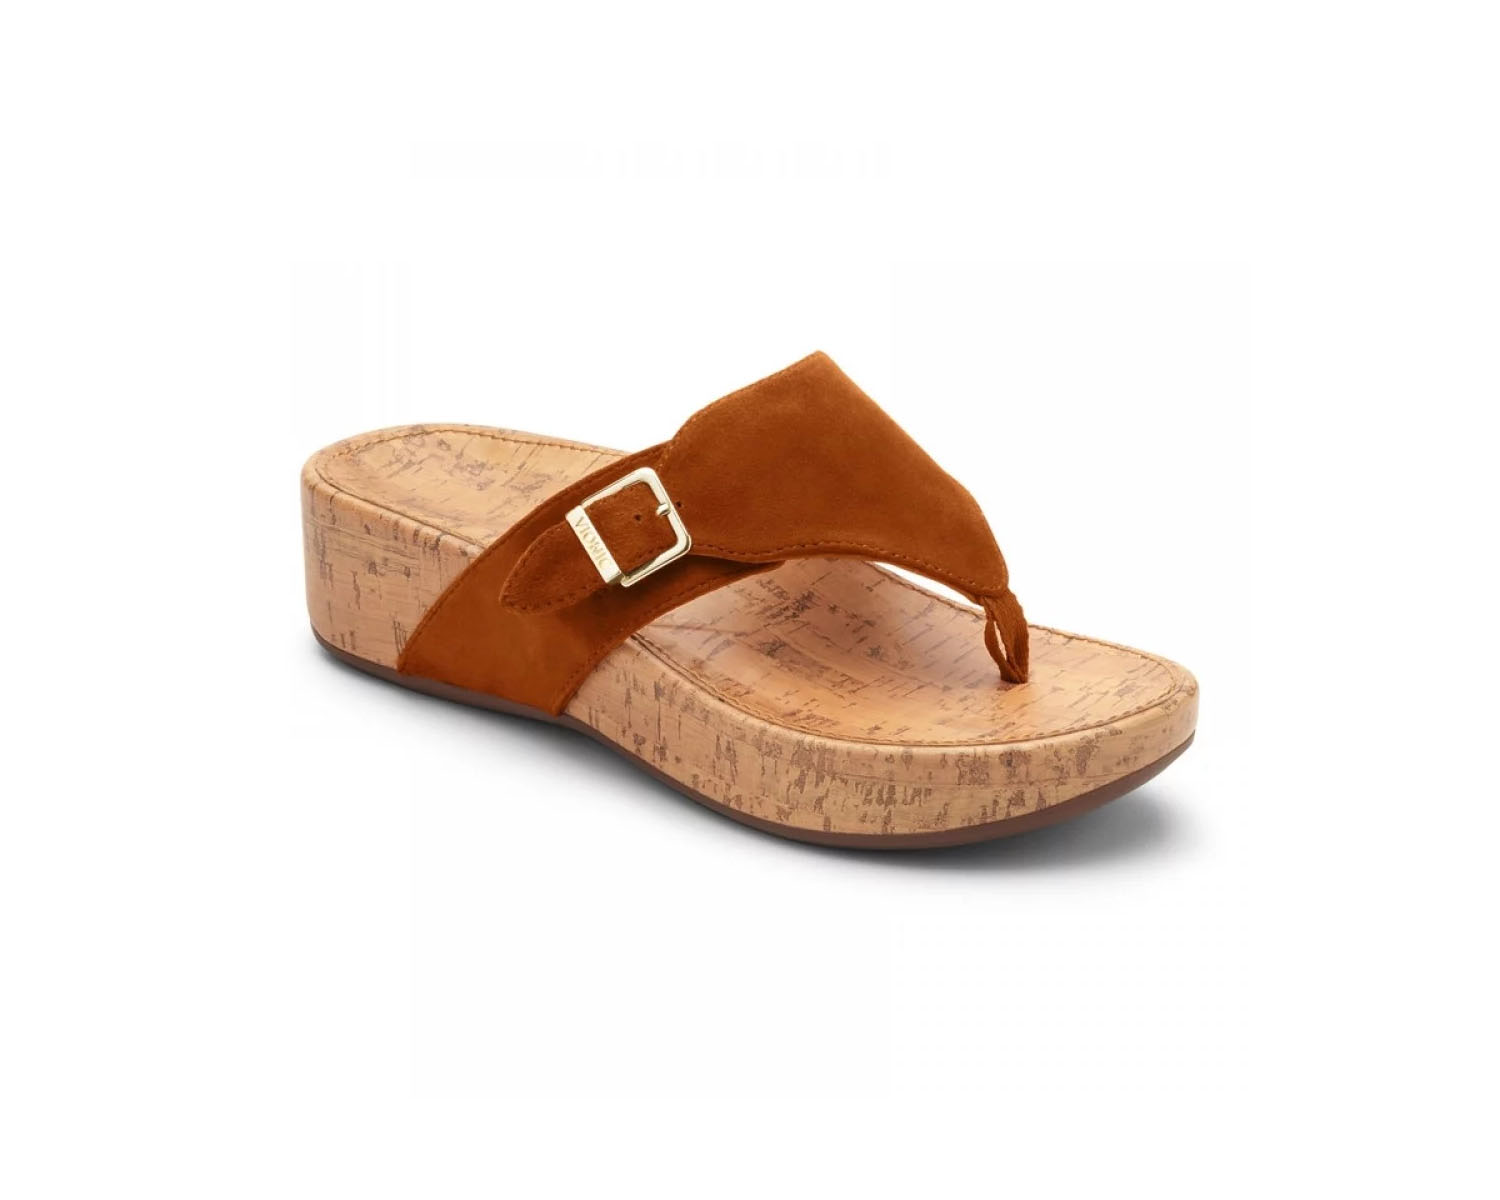 It's time to upgrade your ordinary flip flops. This pair features a cushioned, cork sole with arch support and an adjustable suede upper in rich caramel (shown), red, or black.